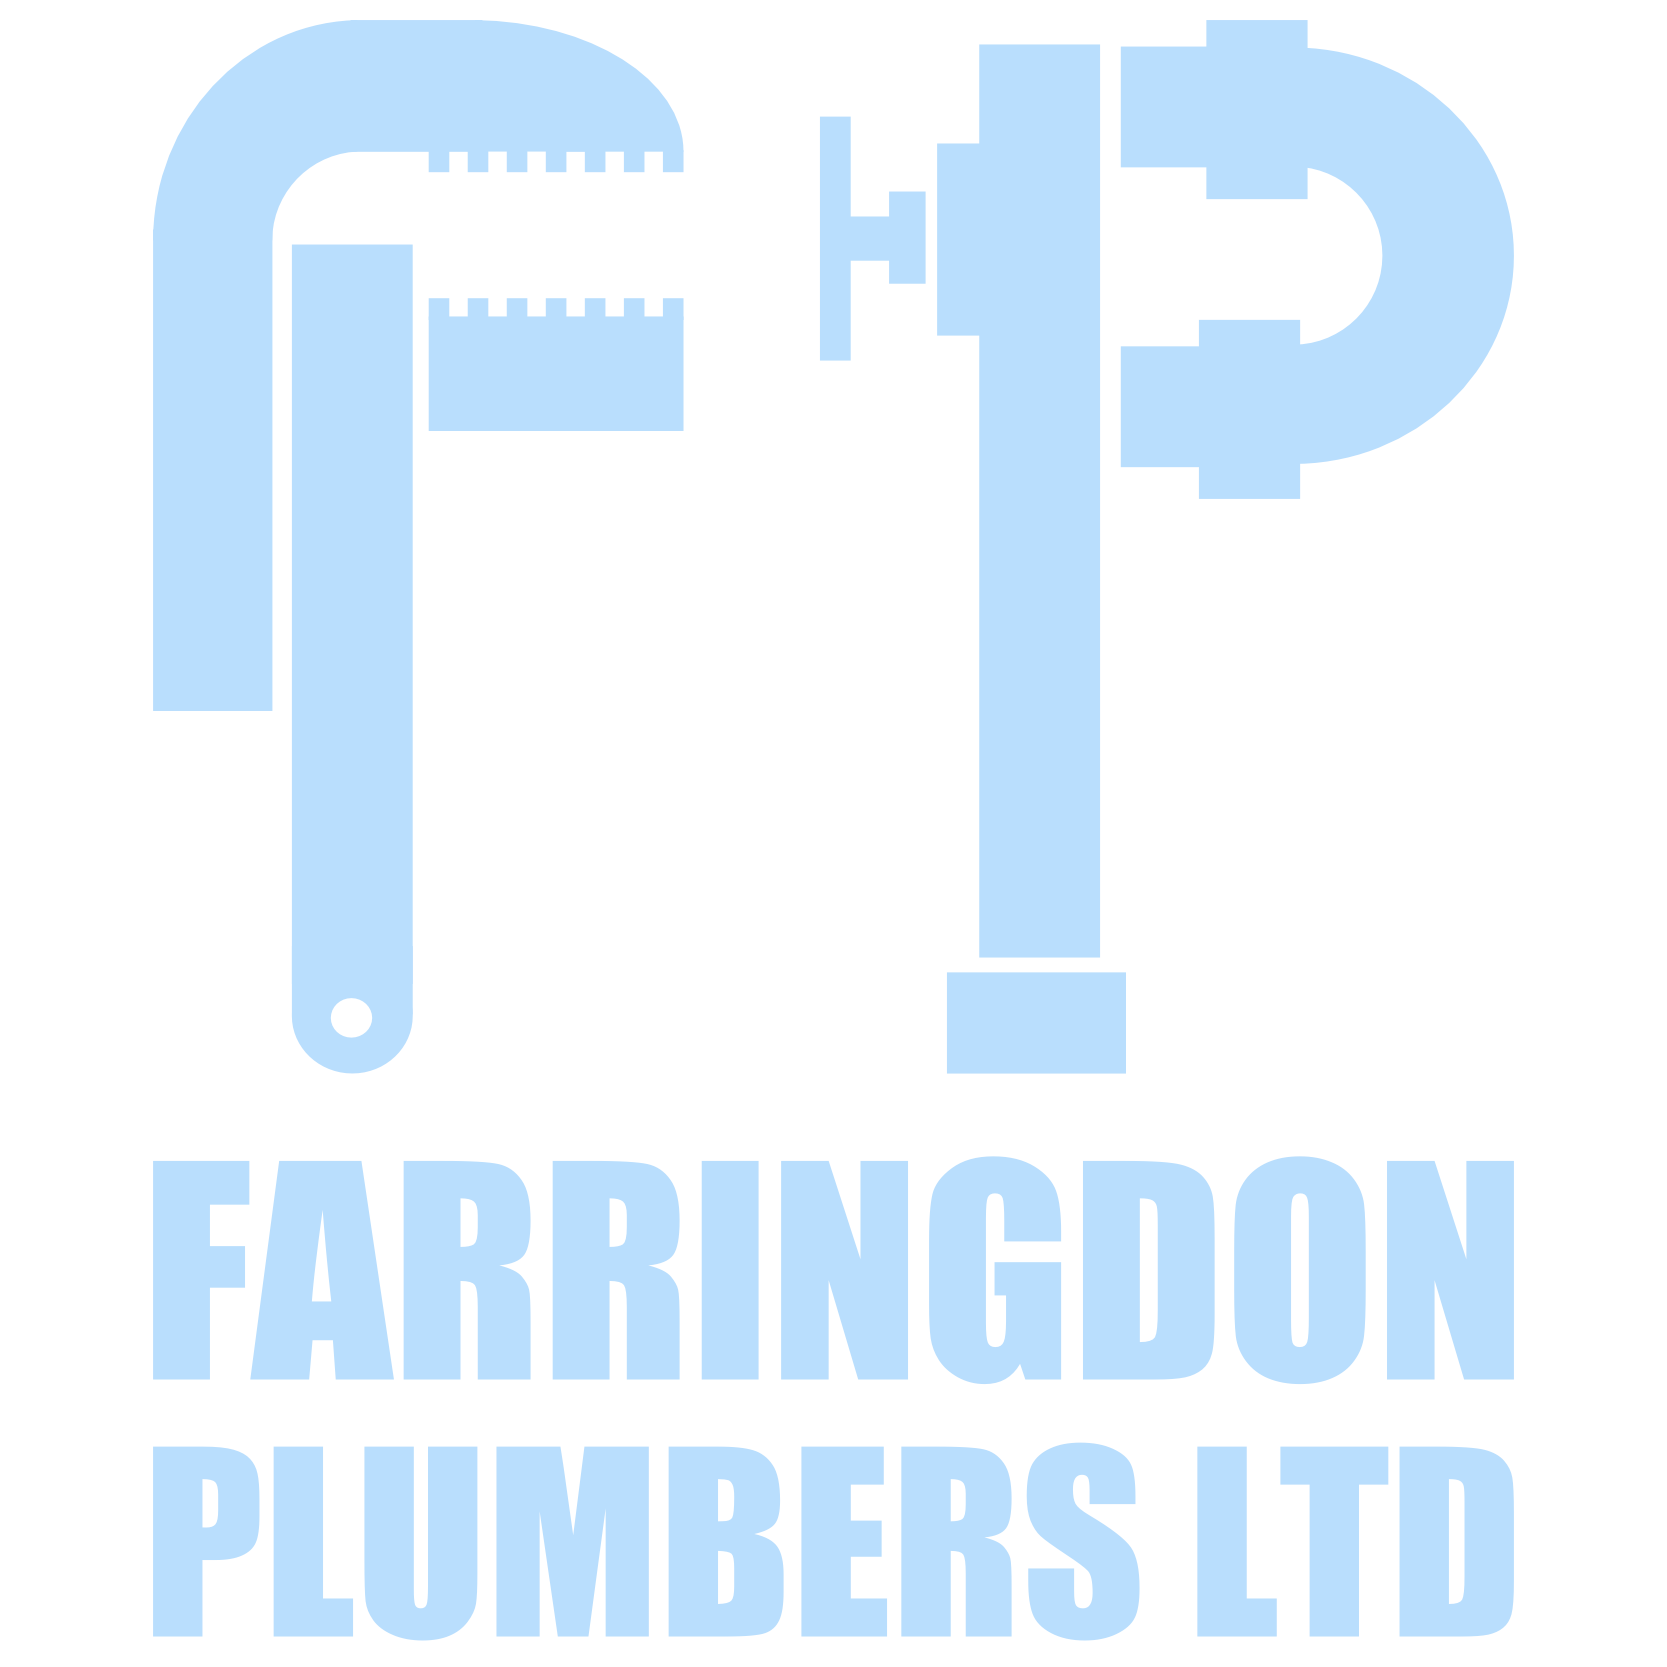 Farringdon Plumbers